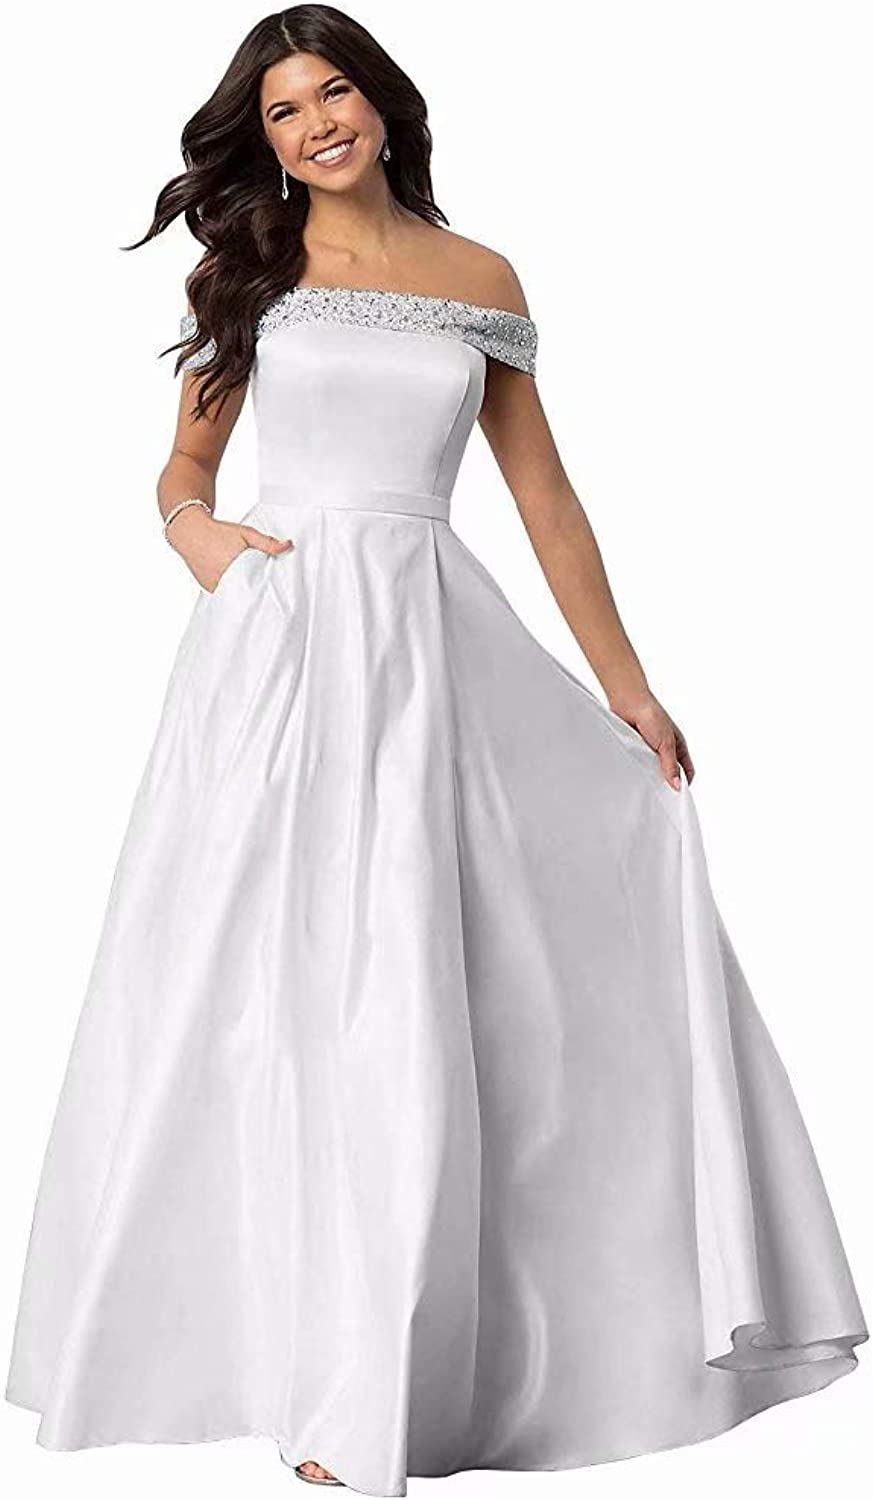 JYDX Women's Off The Shoulder Beaded Satin Prom Dress ALine Formal Gown with Pockets